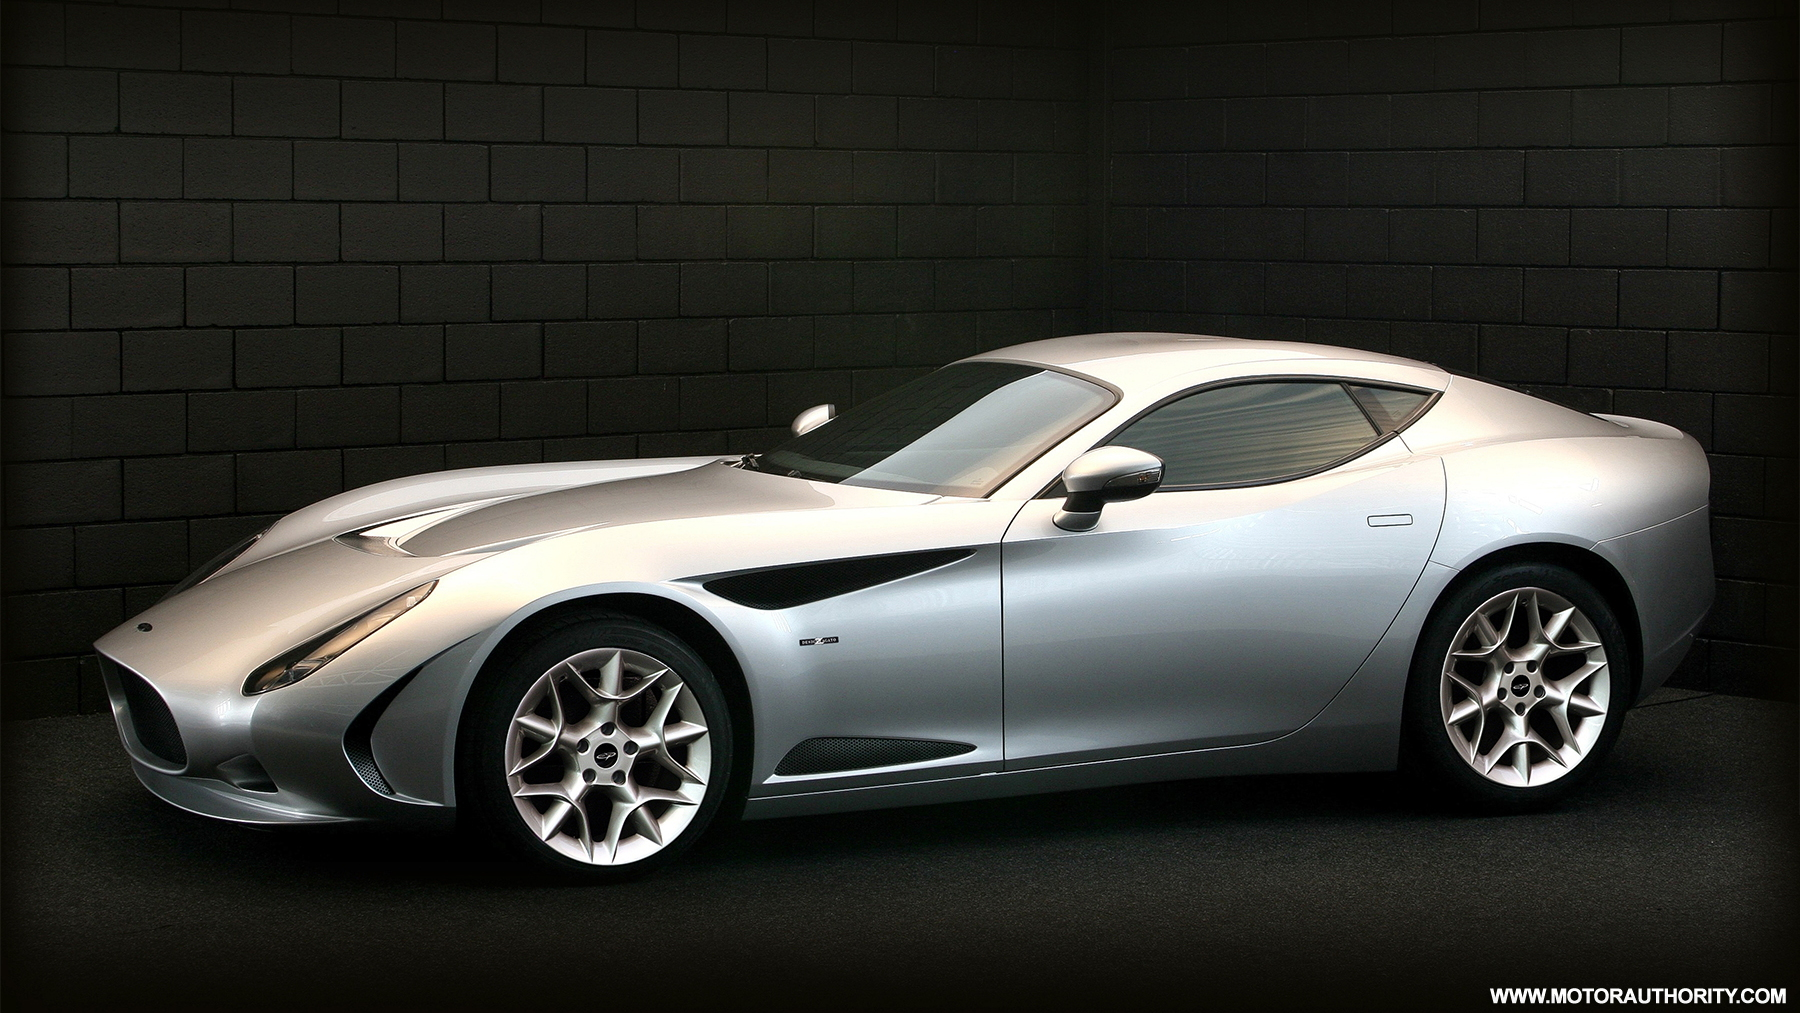 zagato perana z one studio images 001